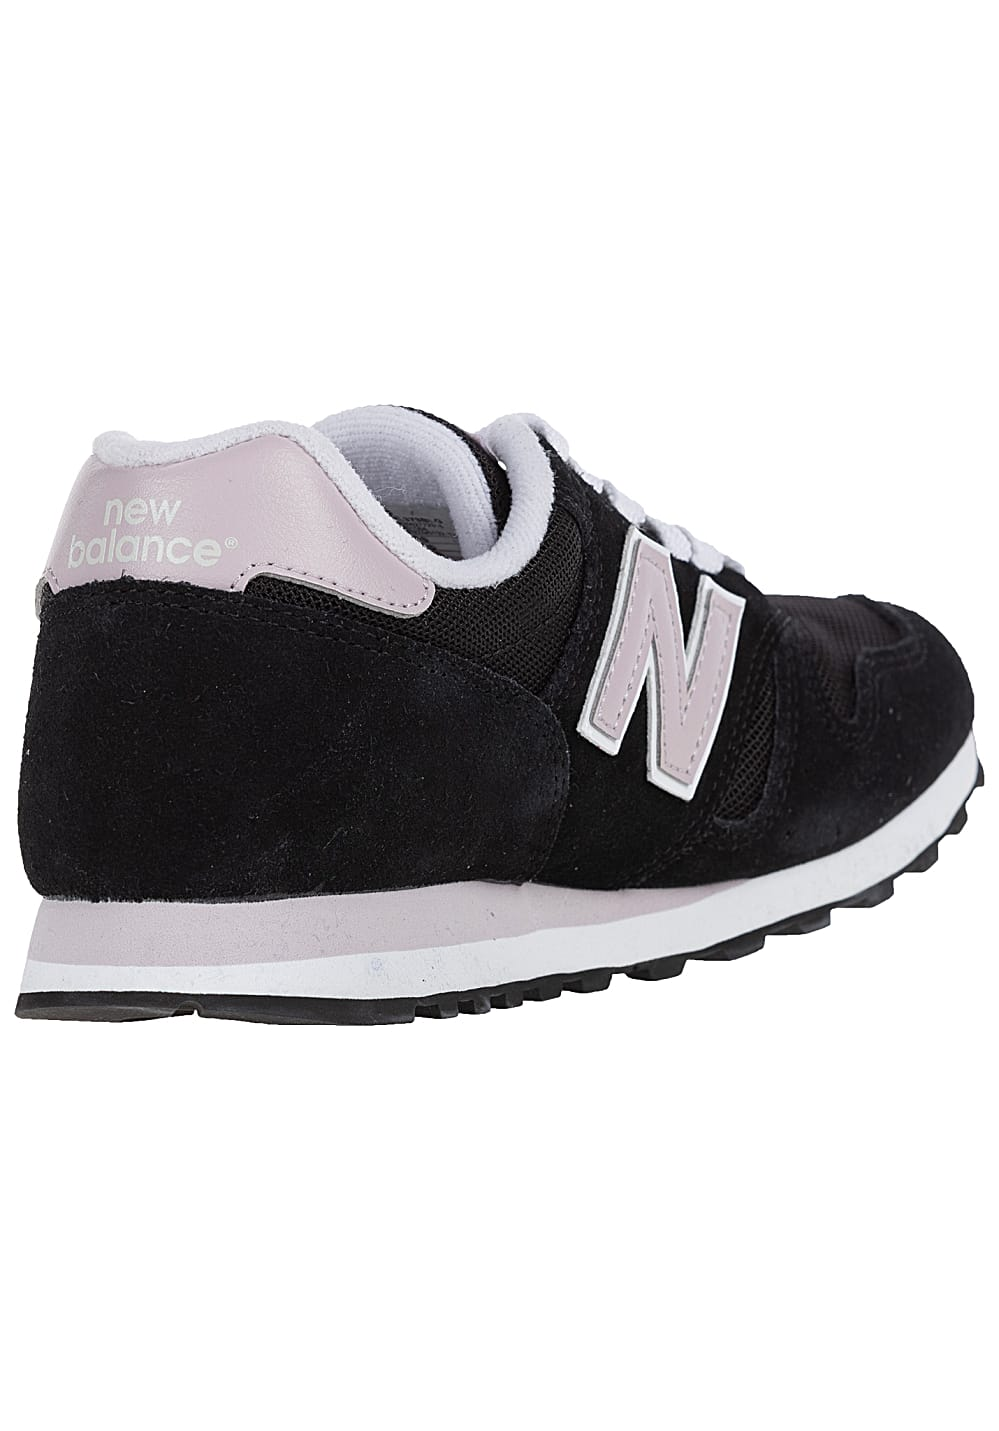 6b3598256a NEW BALANCE WL373 B - Sneaker für Damen - Schwarz - Planet Sports